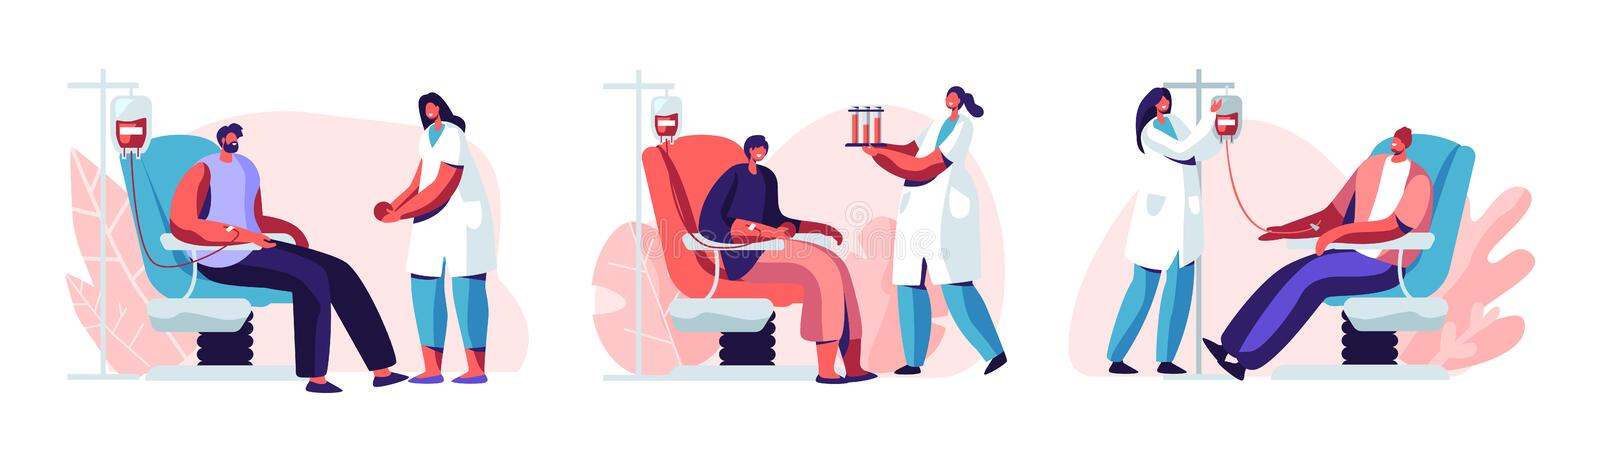 Volunteers Male Characters Sitting in Medical Hospital Chairs Donating Blood. Doctor Woman Nurse Take it in Test Flasks, Donation stock illustration